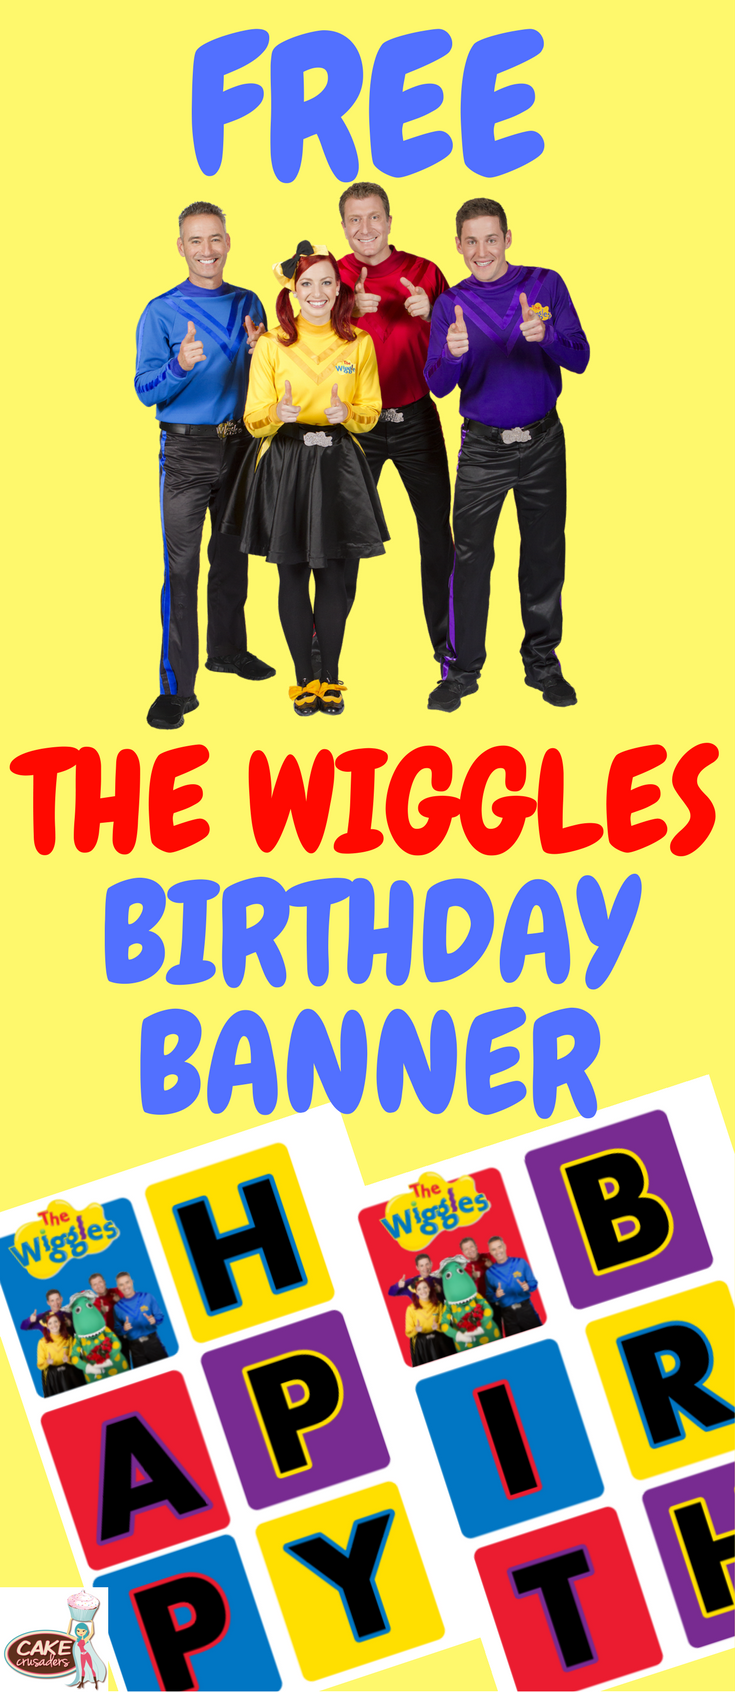 The Wiggles Happy Birthday Banner Jack Happy Birthday Banners